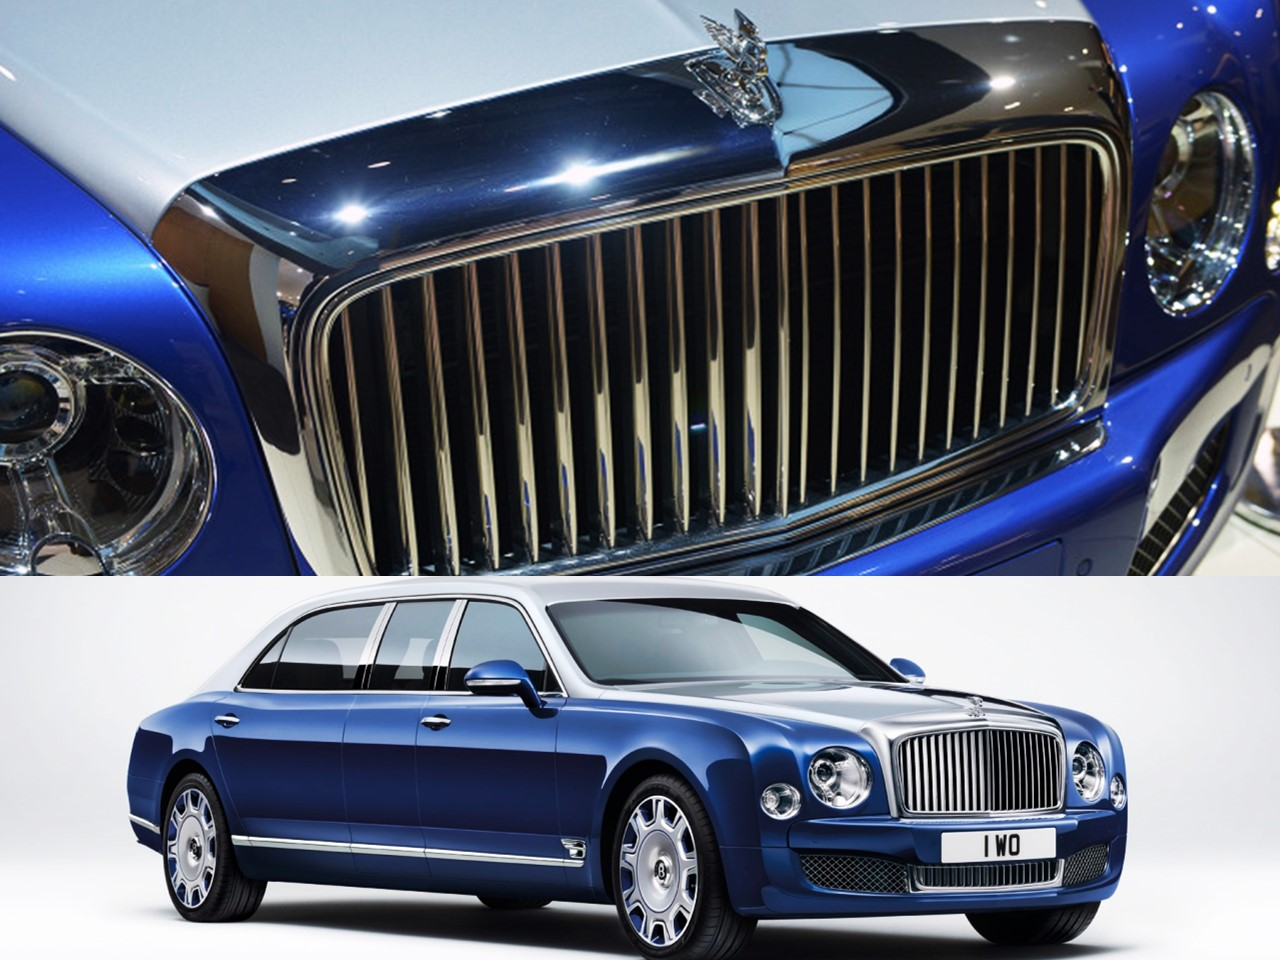 saloon architecture built mulliner dimensions custom by mulsanne its are added as notoriousluxury resplendent cleverly crafted limousine into the a this beauty grand retains bentley